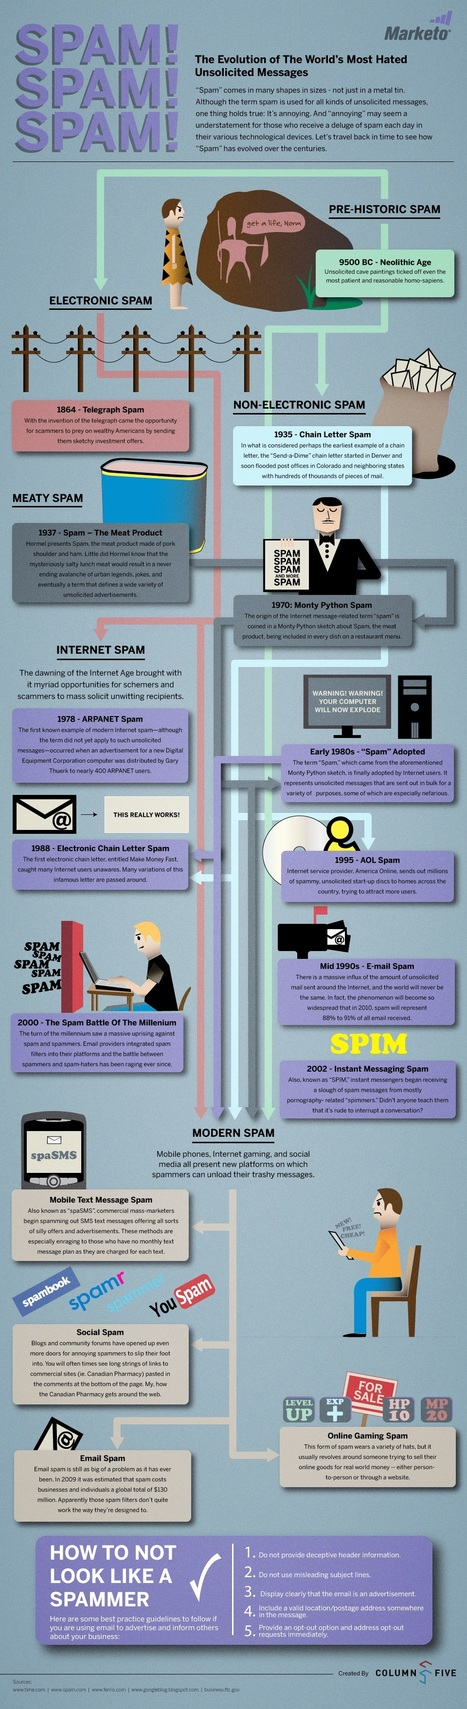 The Evolution Of Spam | Business Communication 2.0: Social Media and Digital Communication | Scoop.it